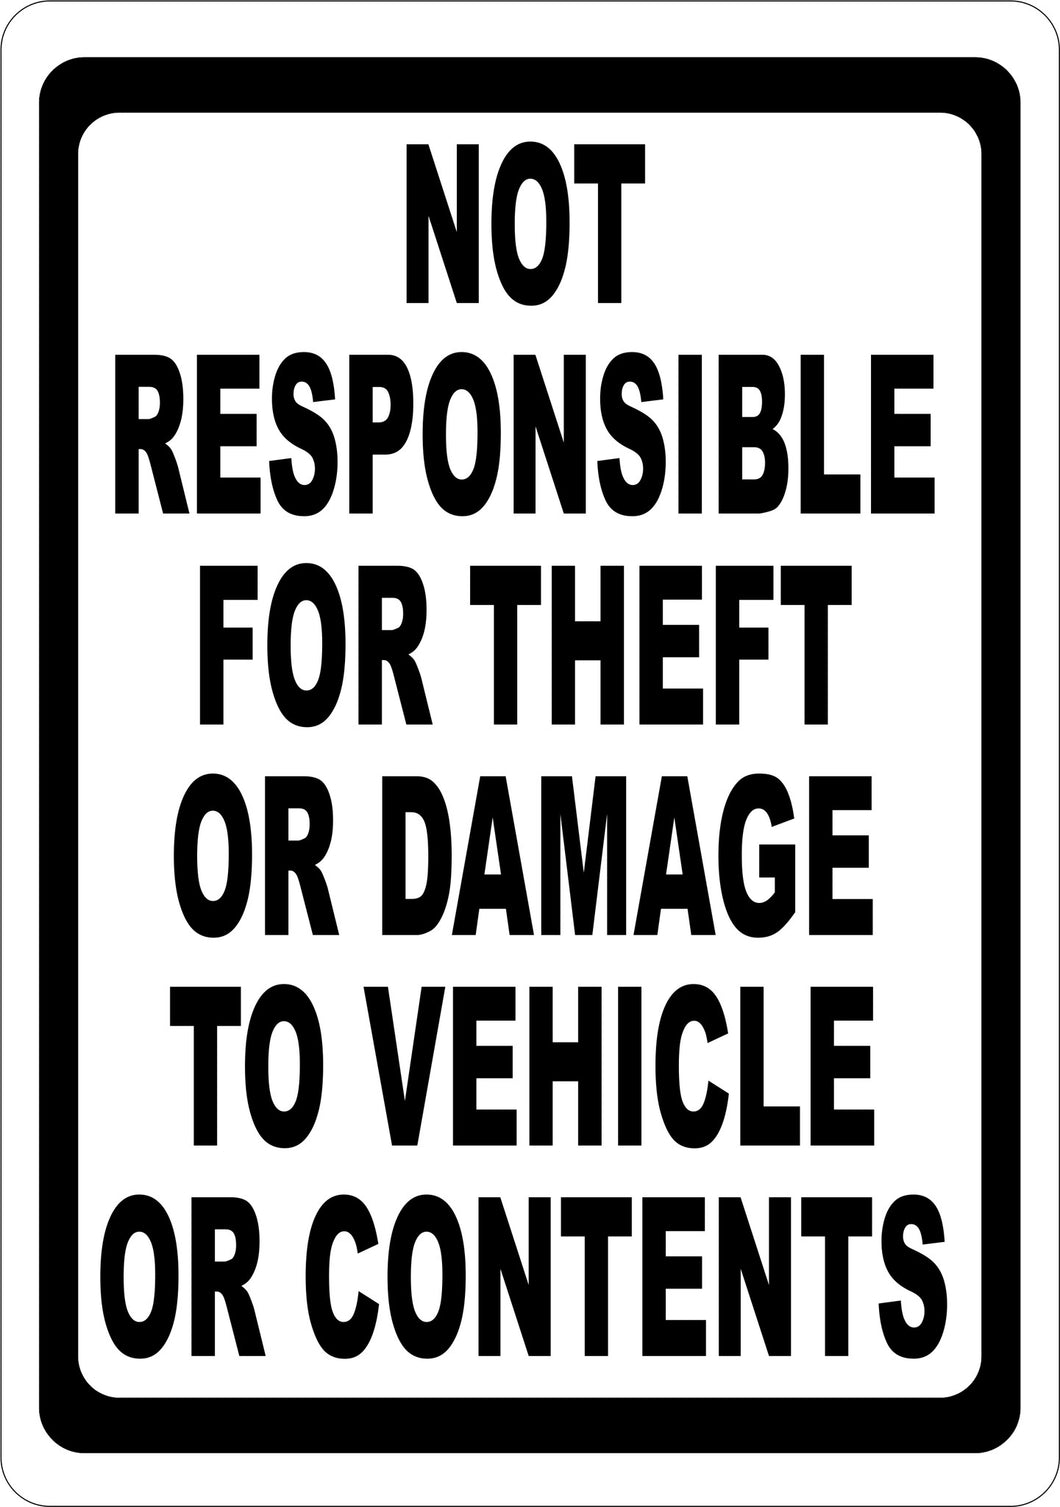 Not Responsible For Theft or Damage to Vehicle Sign - Signs & Decals by SalaGraphics